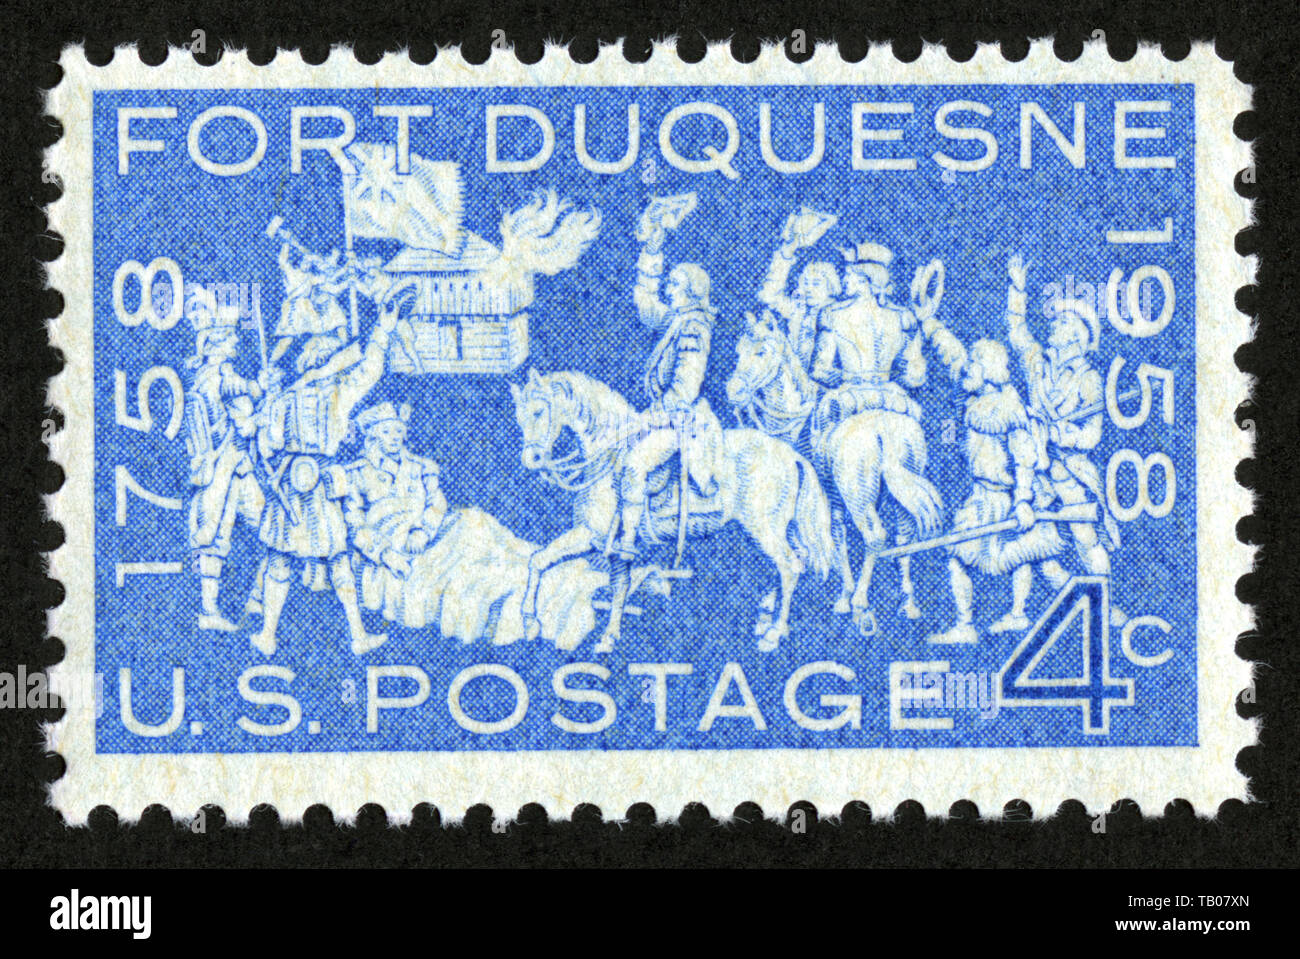 Stamp print in USA,1958, Fort Duquesne - Stock Image